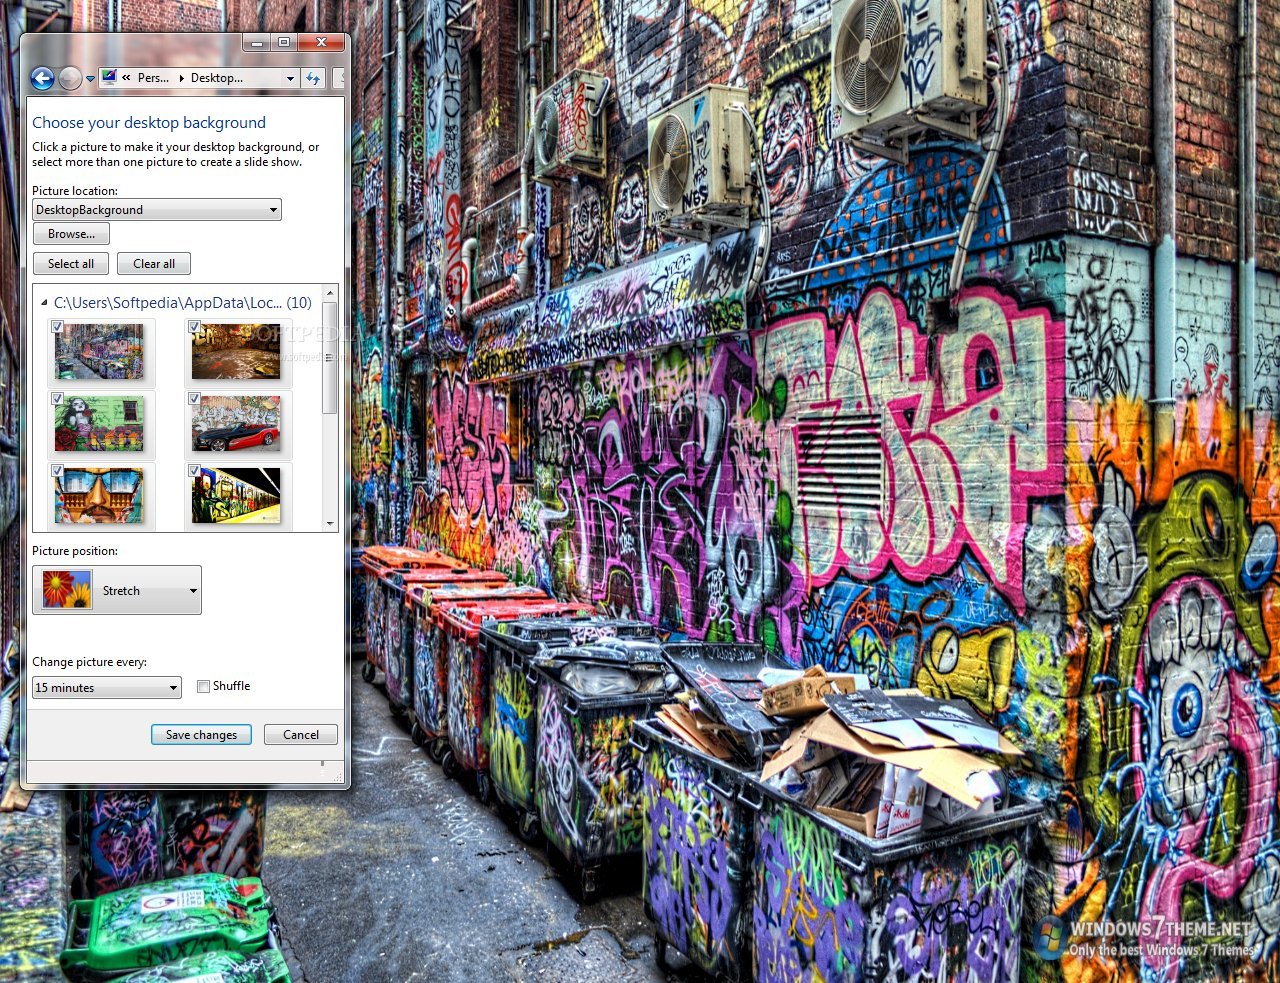 Graffiti art windows 7 theme this is a sample from what this theme pack will